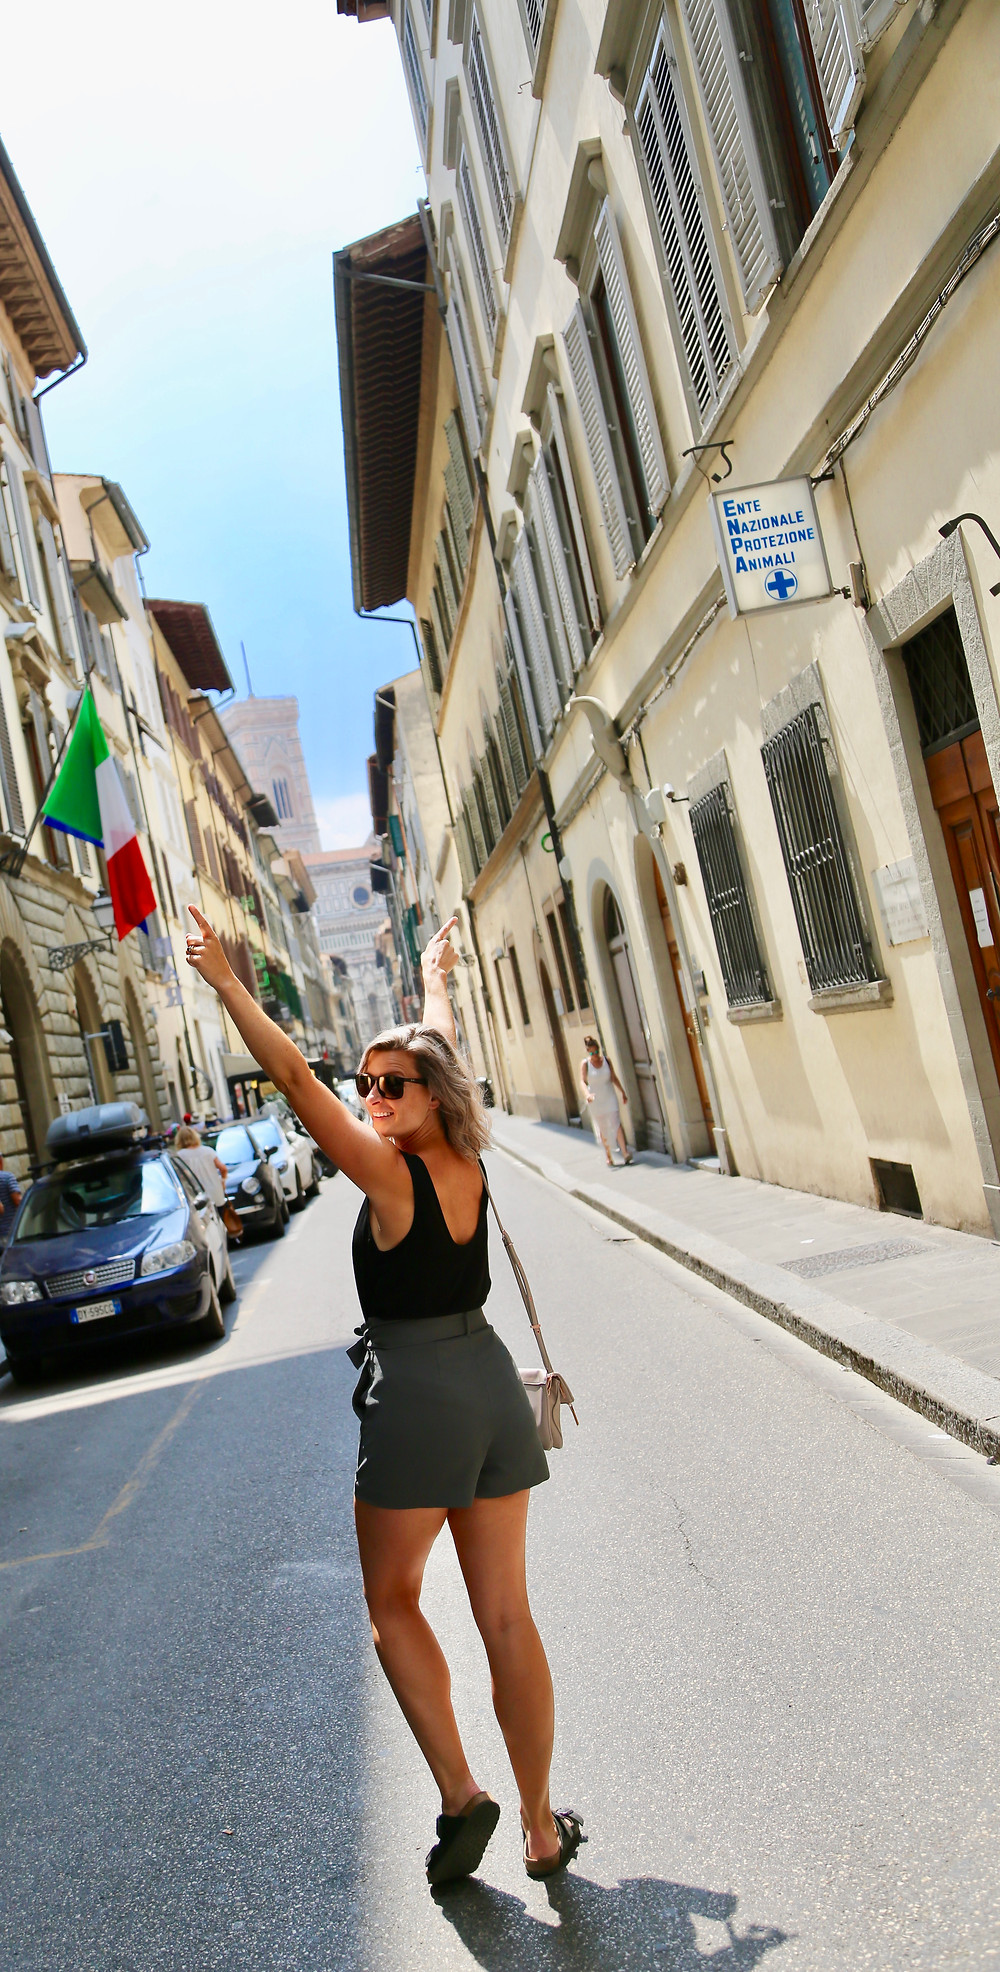 woman arms raised and looking back walking down a street in Rome